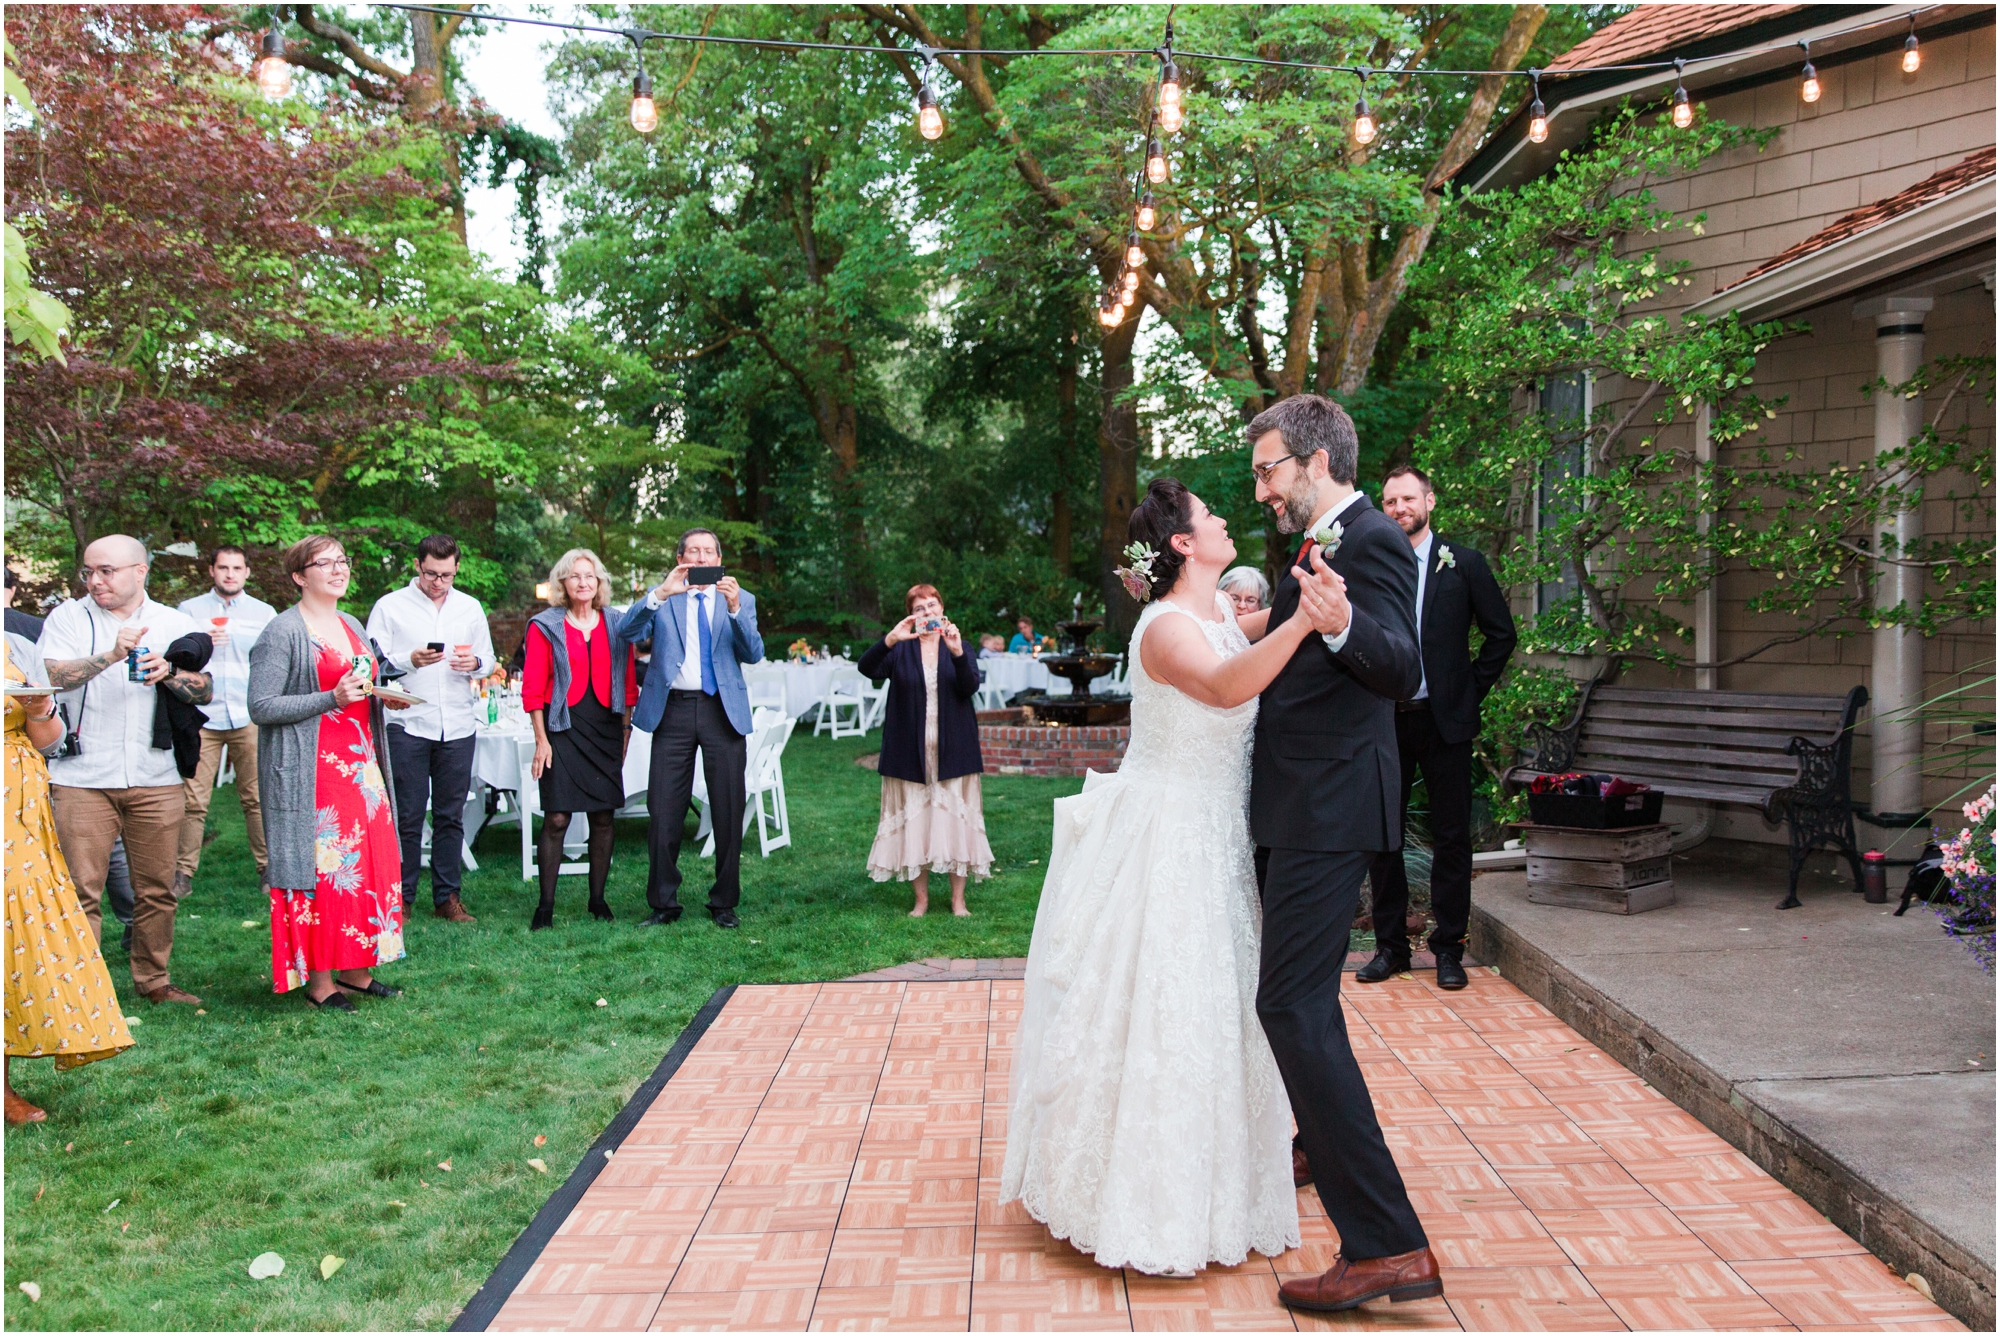 Garden wedding in Ellensburg, WA. Photos by Briana Calderon Photography based in the greater Seattle-Tacoma Area._1366.jpg